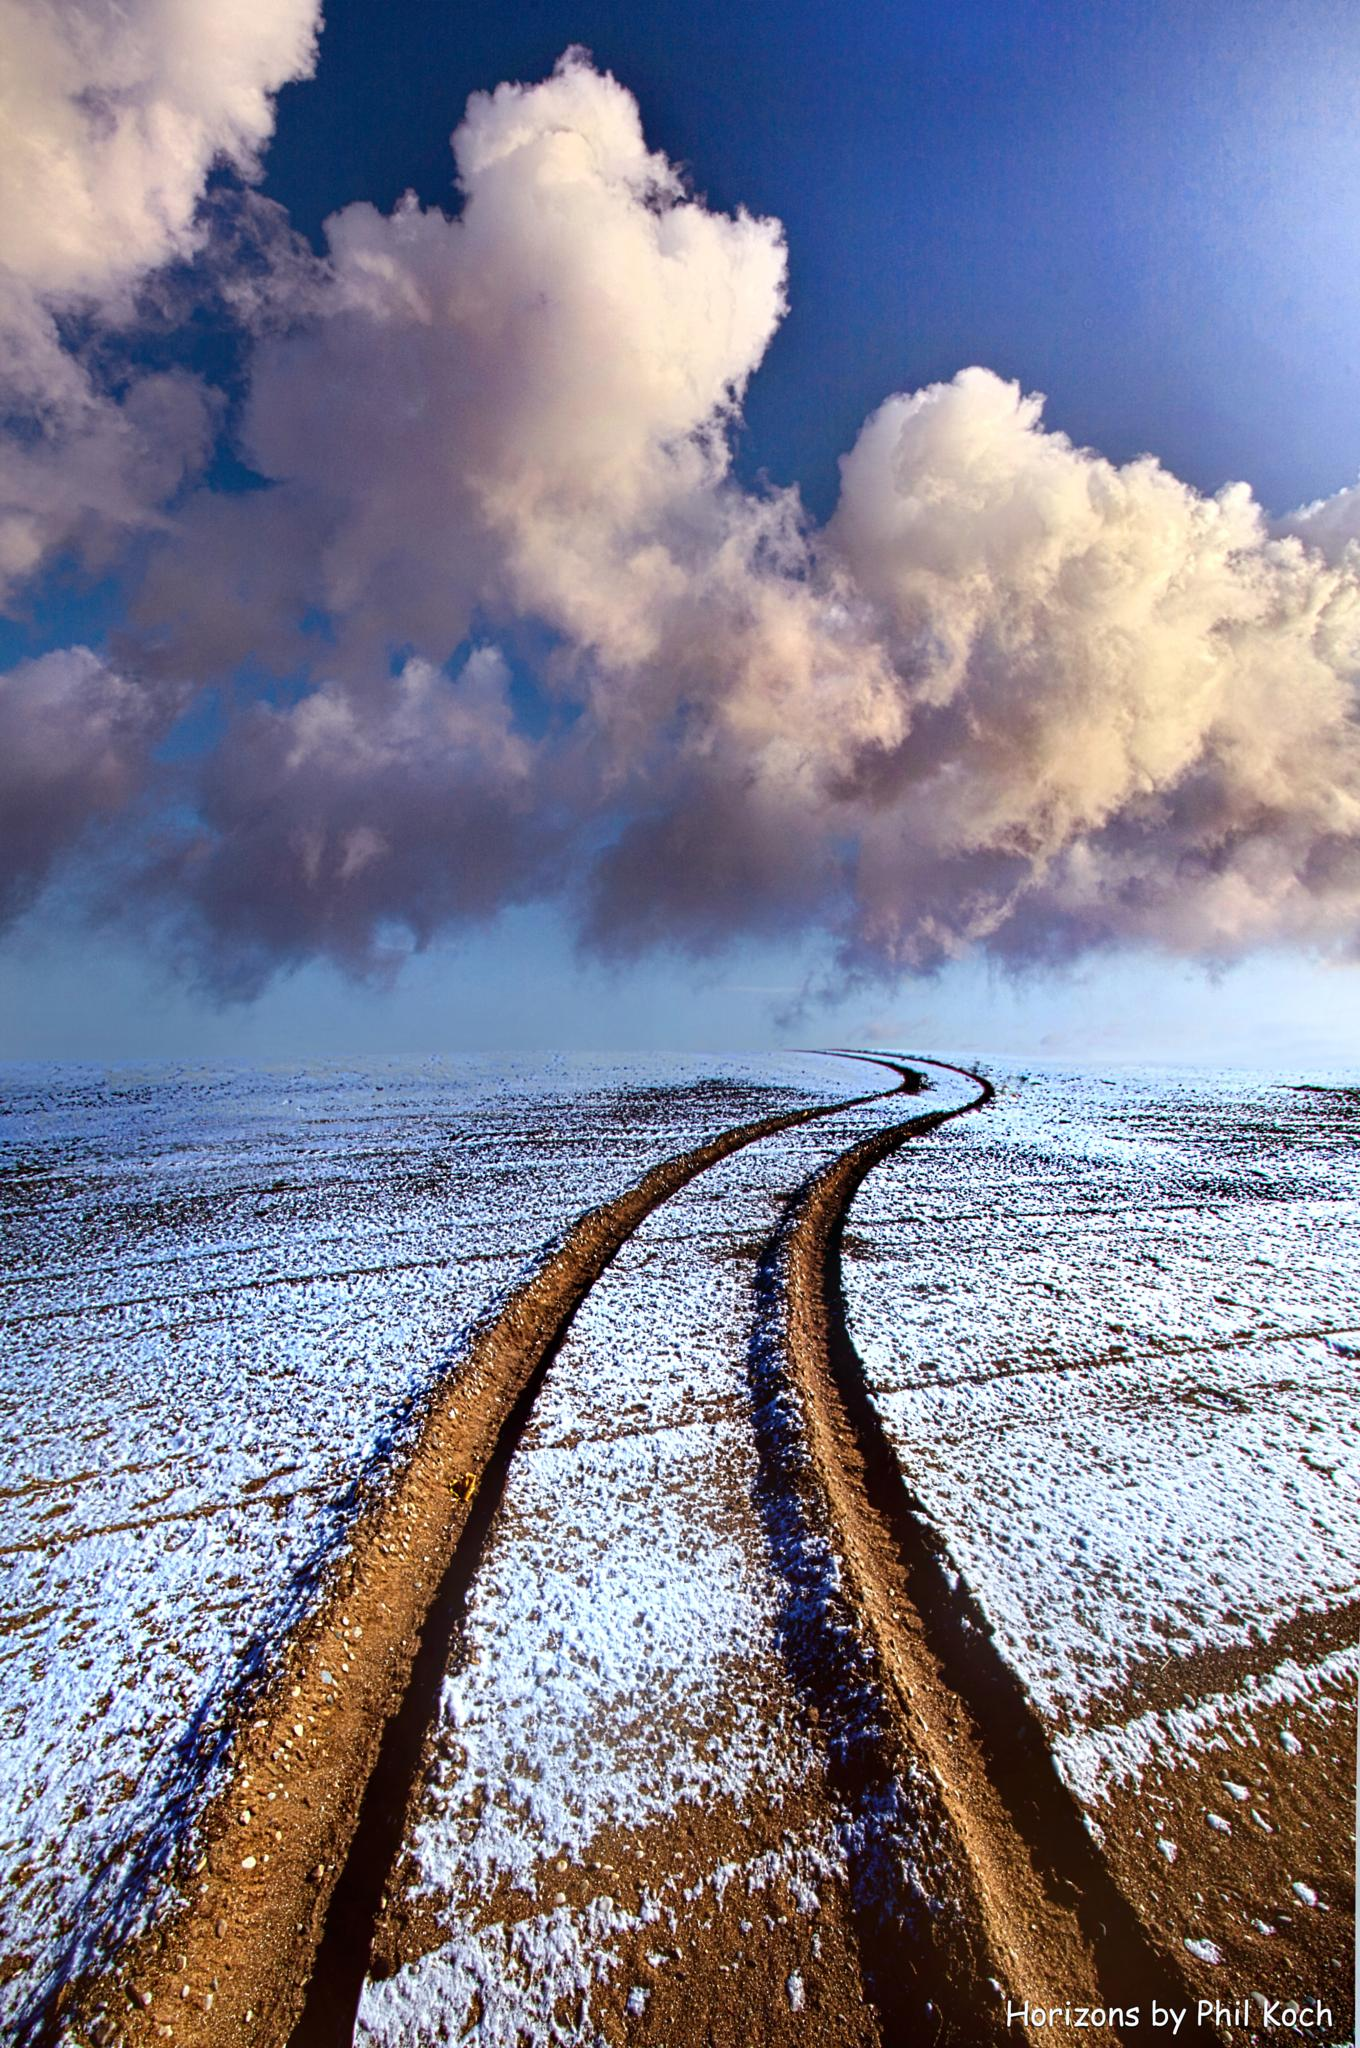 Somewhere Over The Horizon by PhilKoch